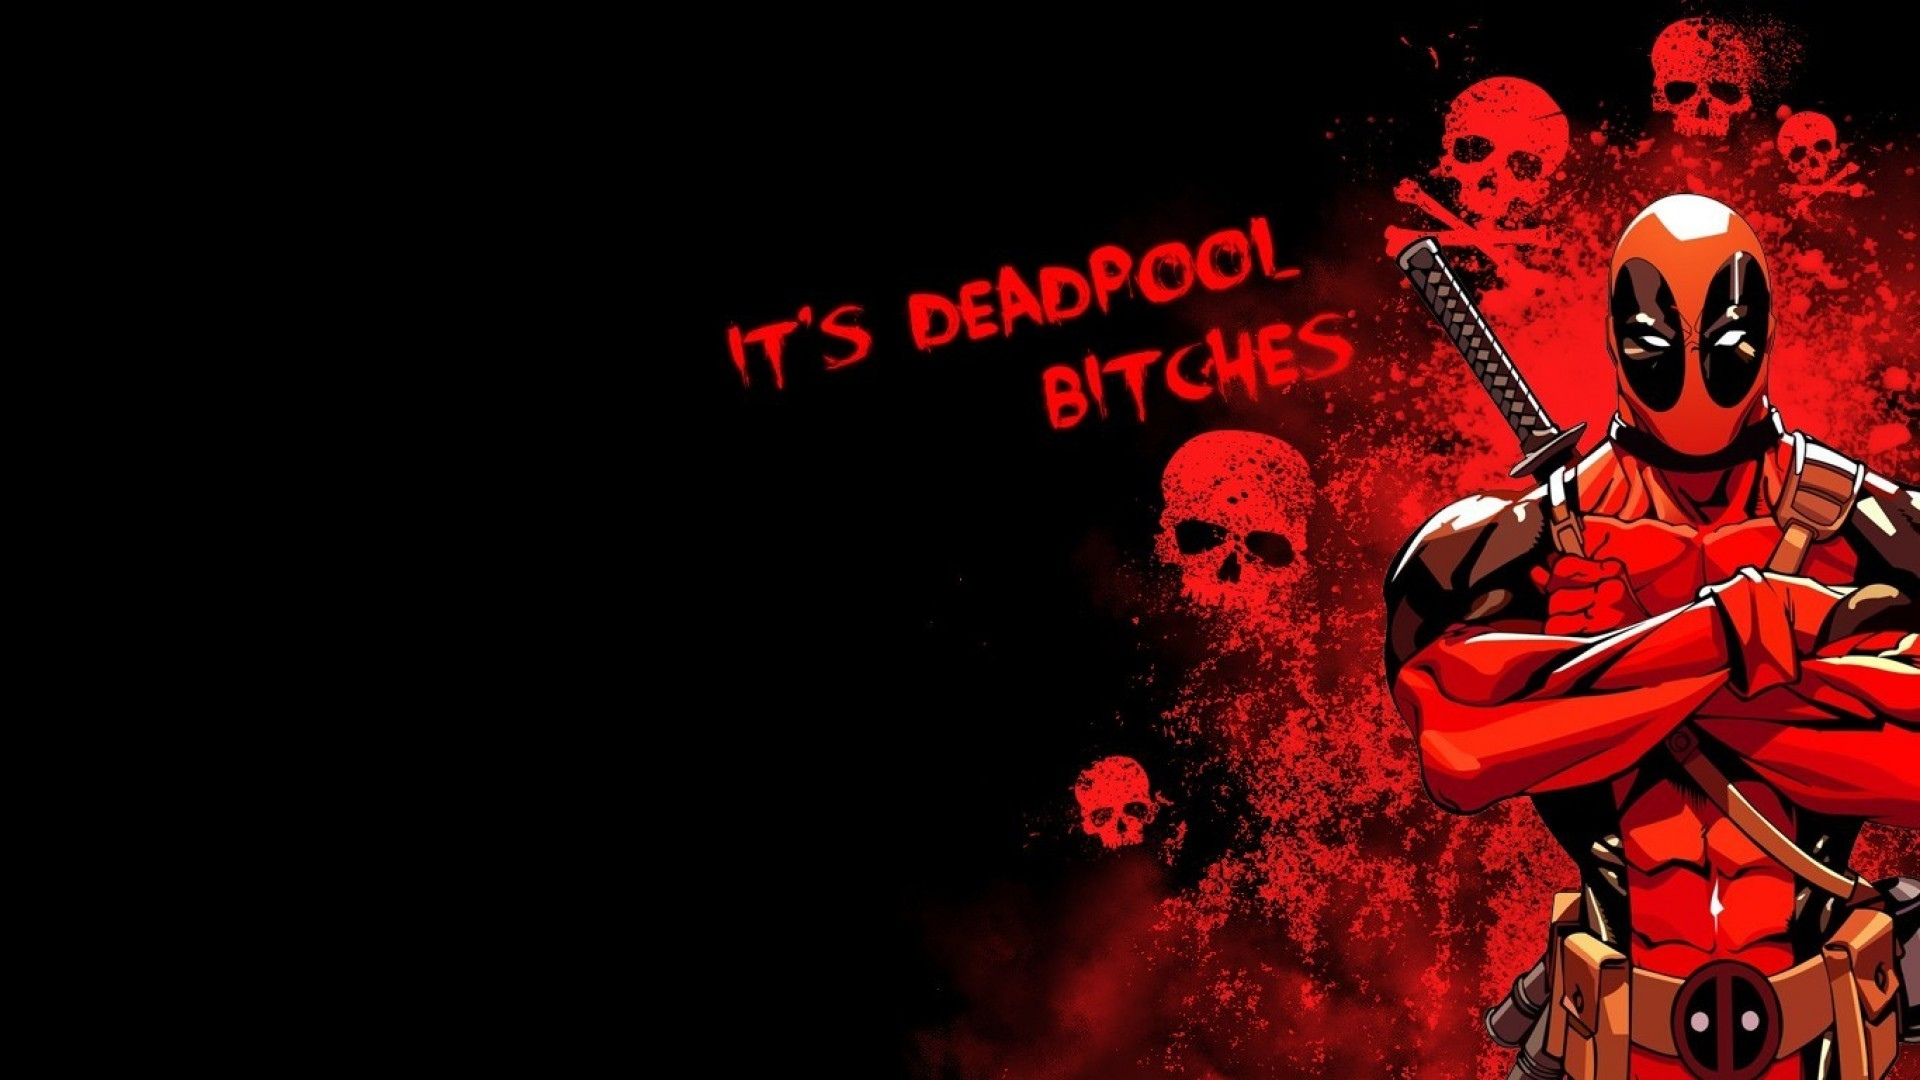 Deadpool Wallpaper HD - HD Wallpapers Backgrounds of Your Choice